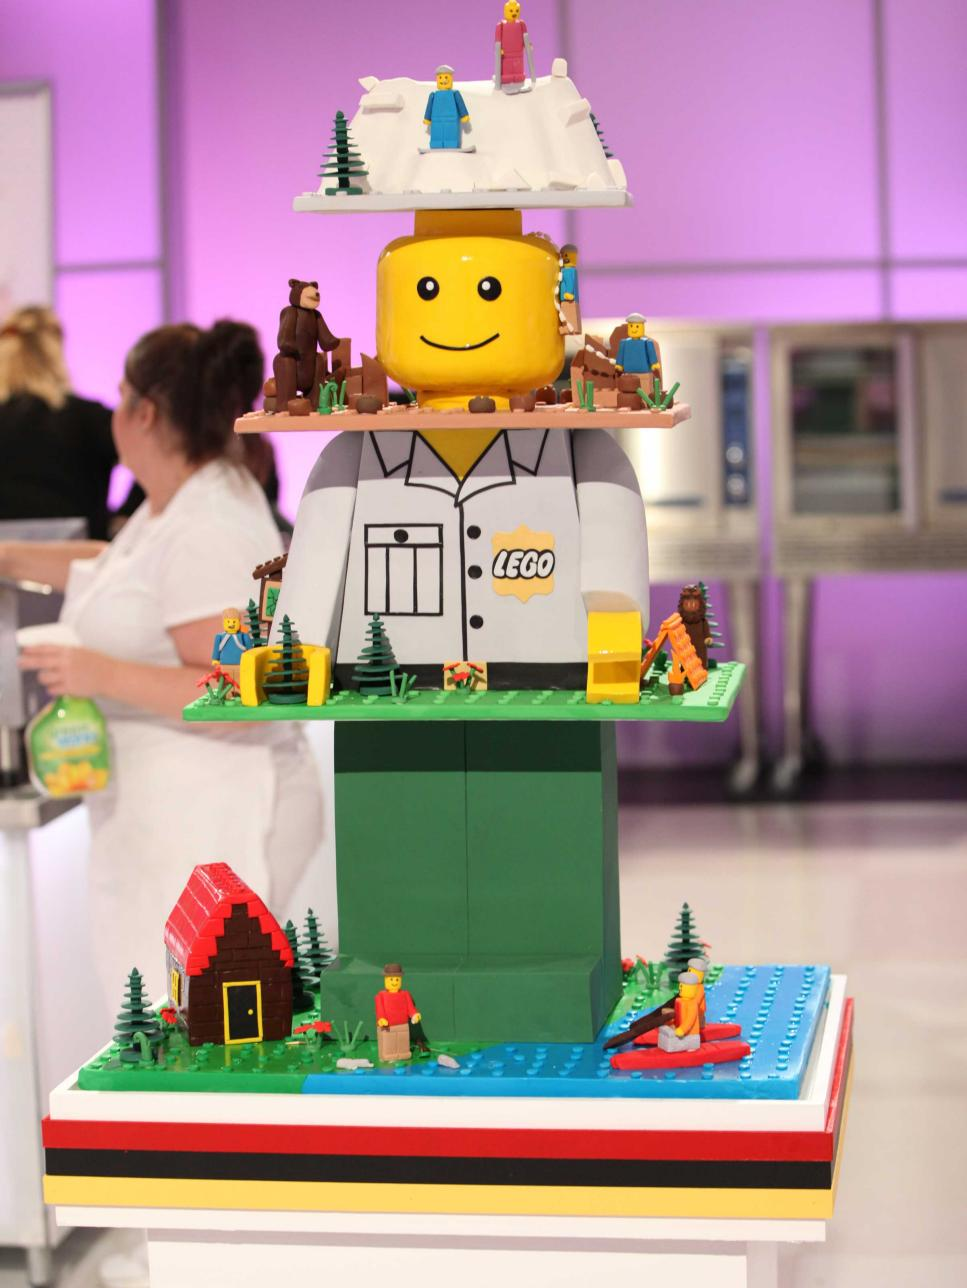 FOOD NETWORK - CAKE WARS - CHAMPIONS -1st Place - WINNER2017 - Season 6 Episode 4 -Lego-Assistant to Kristina Serfass of BAKEDFOOD NETWORK CHALLENGE -2nd Place winner2011 - Season 13 Episode 3 -Renaissance Festival-Assistant to Derek Corsino